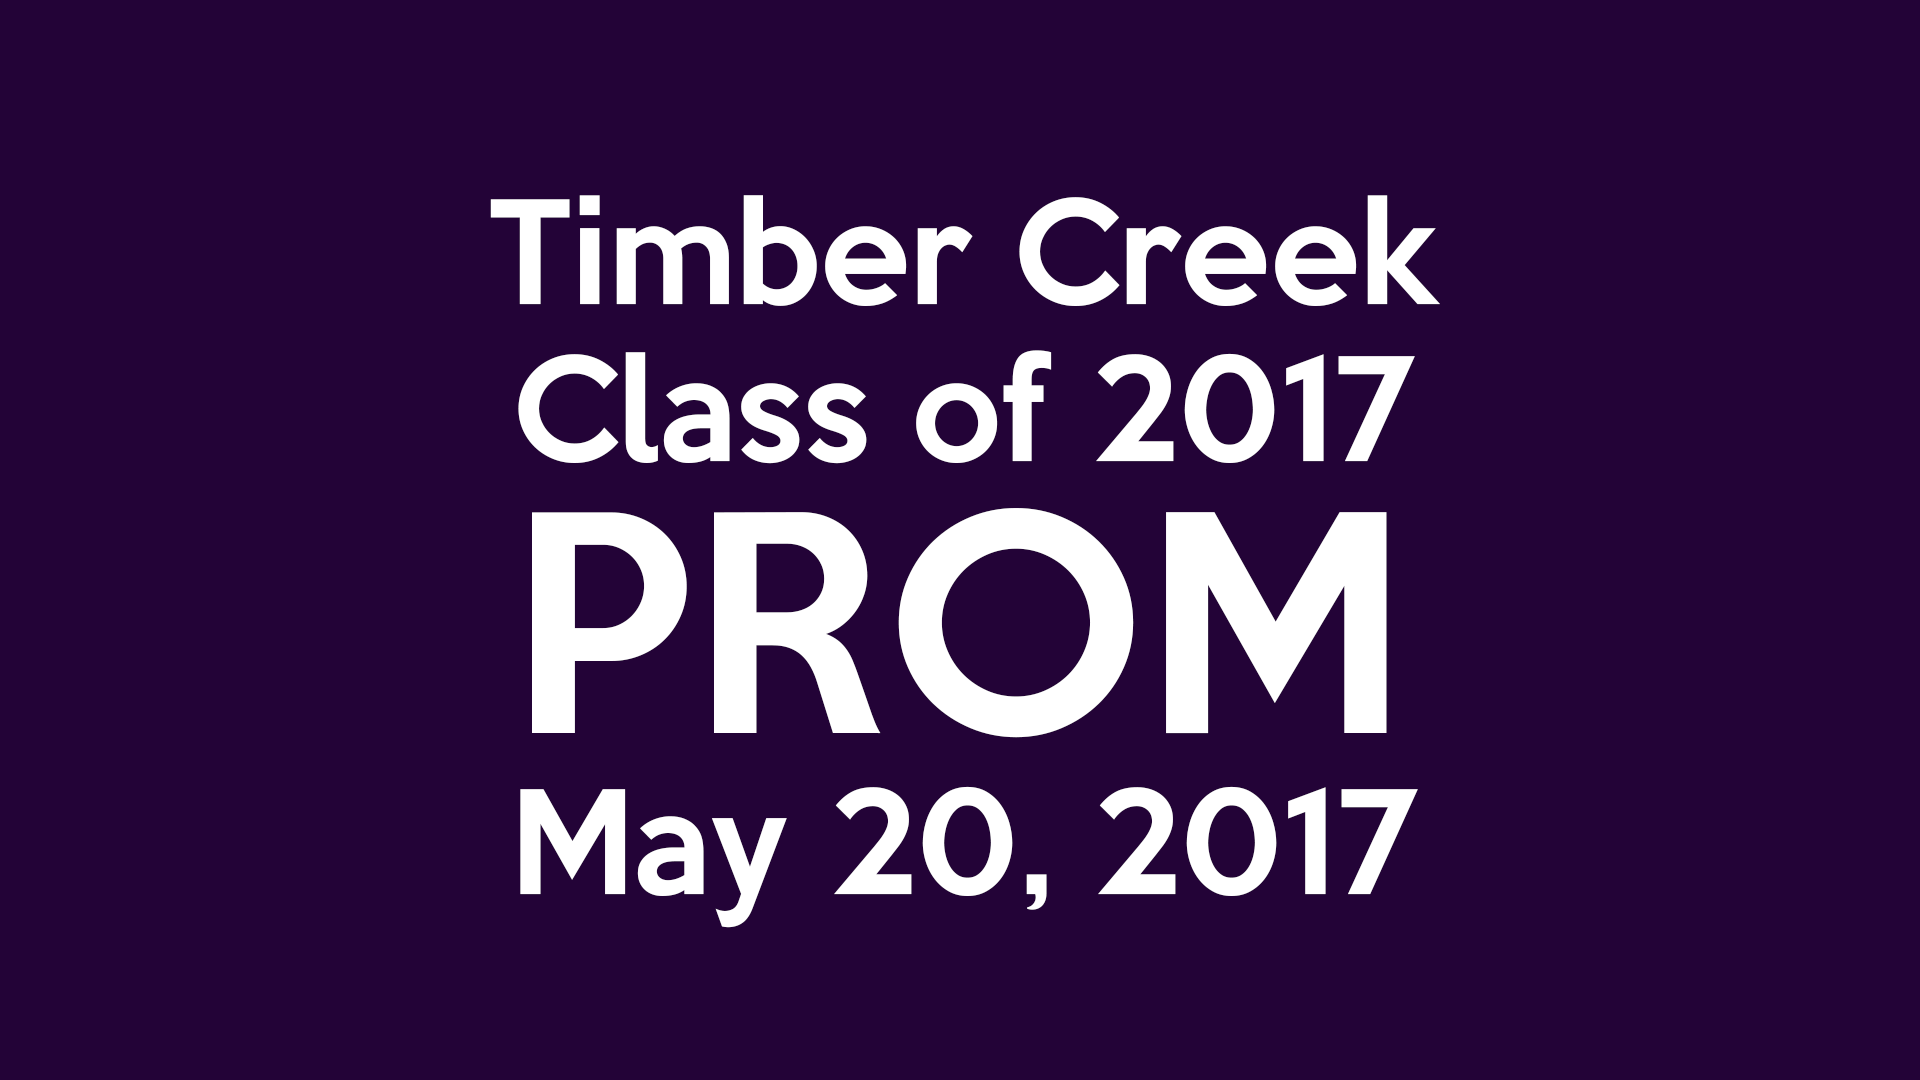 Timber Creek Class Of 2017 Prom Scheduled For May 20, 2017  Prom Tickets Design